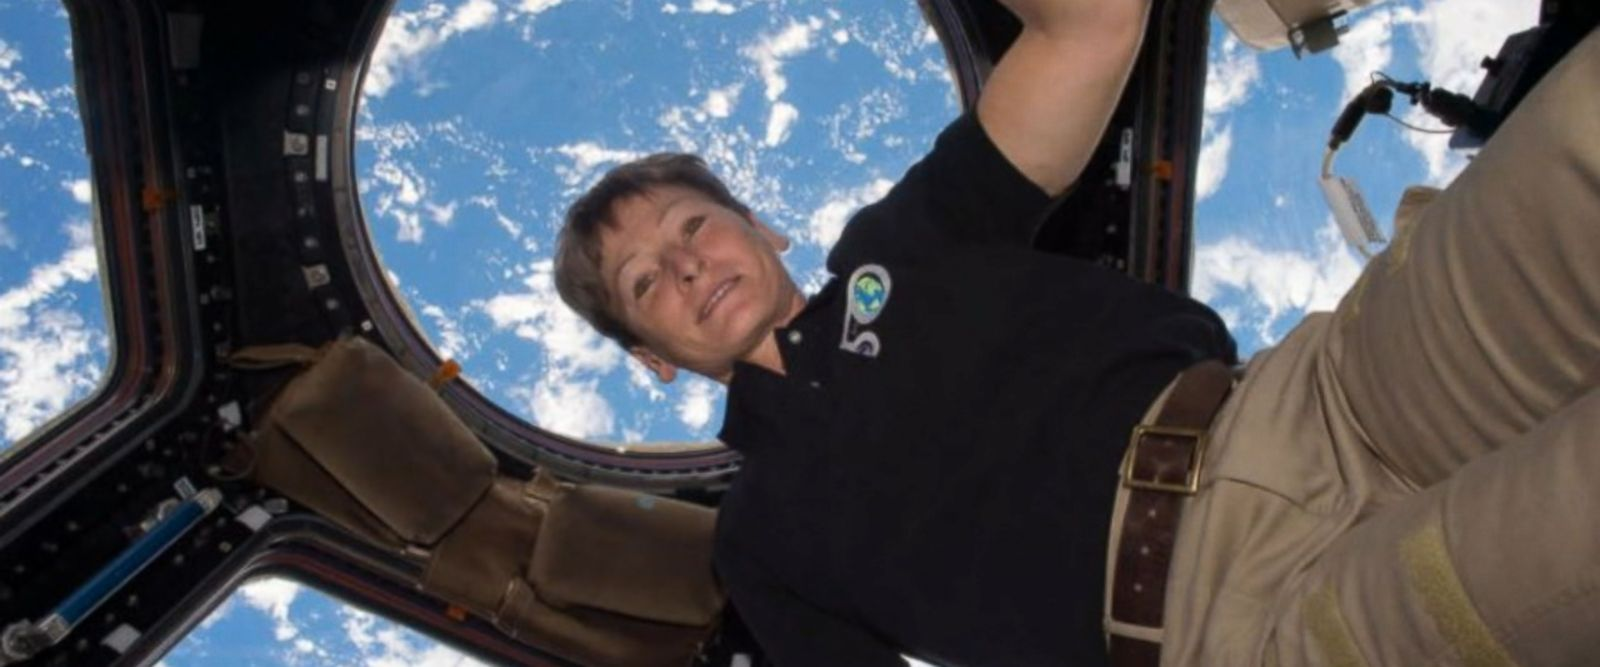 VIDEO: Whitson, 57, broke the record for the most cumulative time in space by an American astronaut early Monday, streaking past the 534-day record held by Jeff Williams.